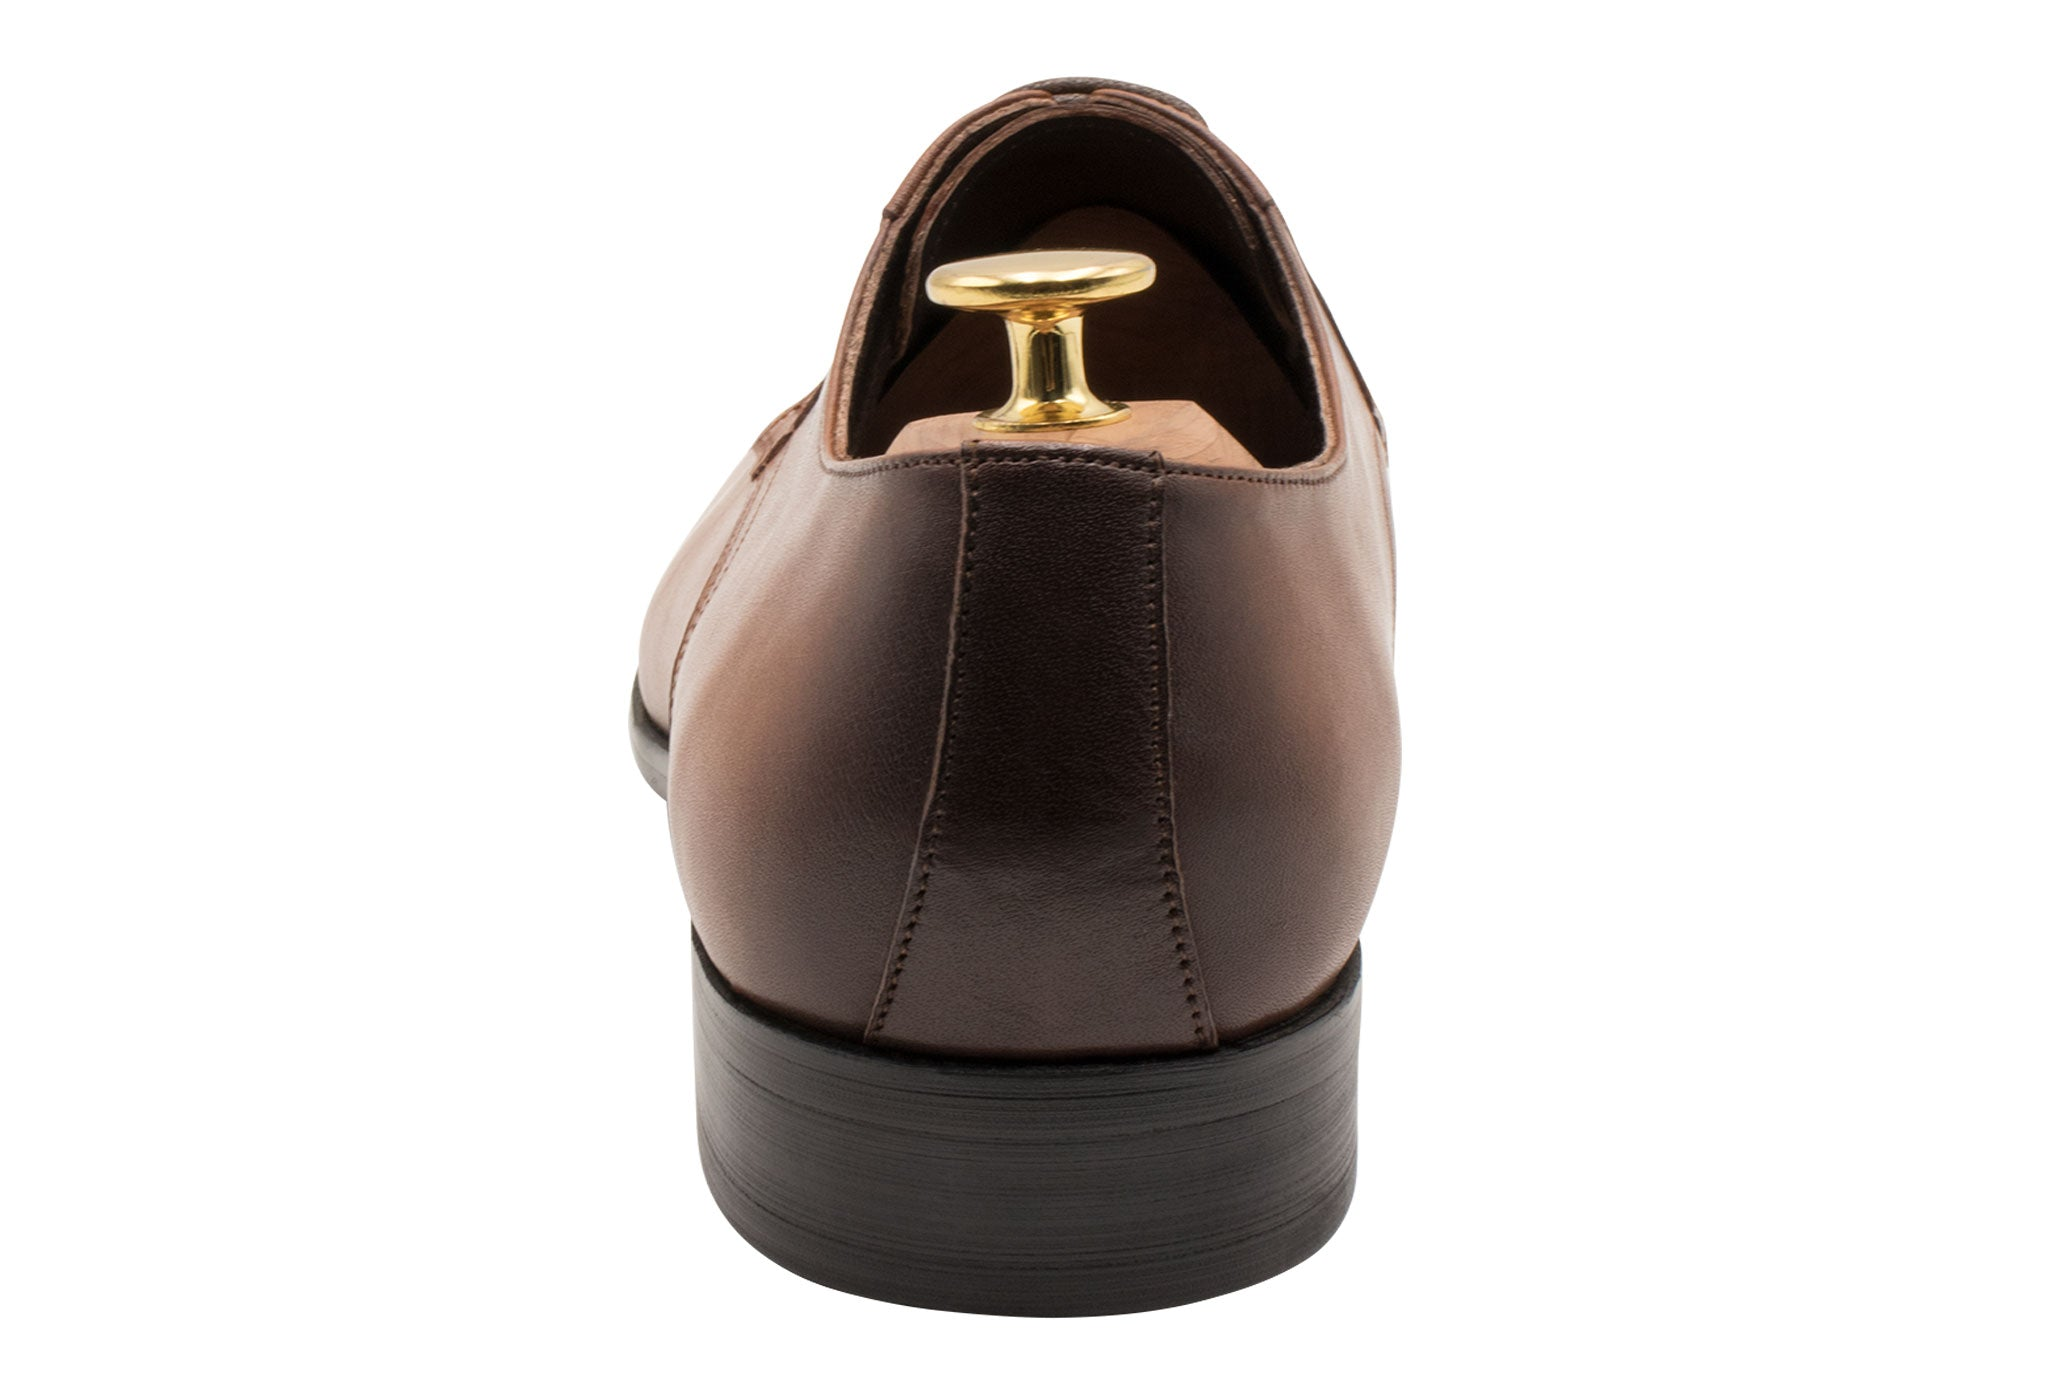 Caleta Straight Cap Chestnut Derby